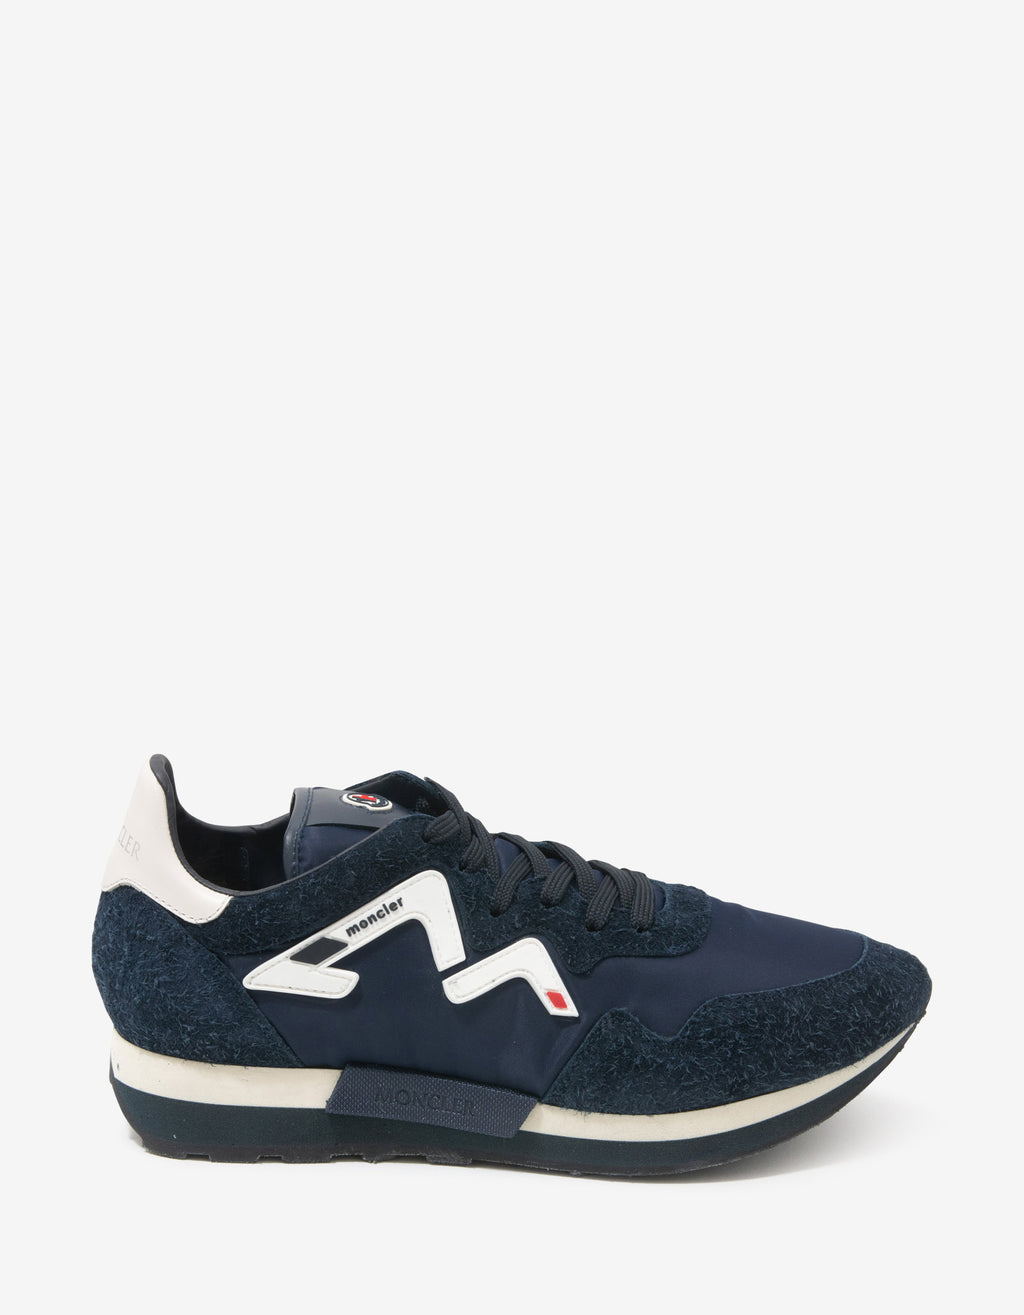 Herald Navy Blue Suede & Nylon Trainers